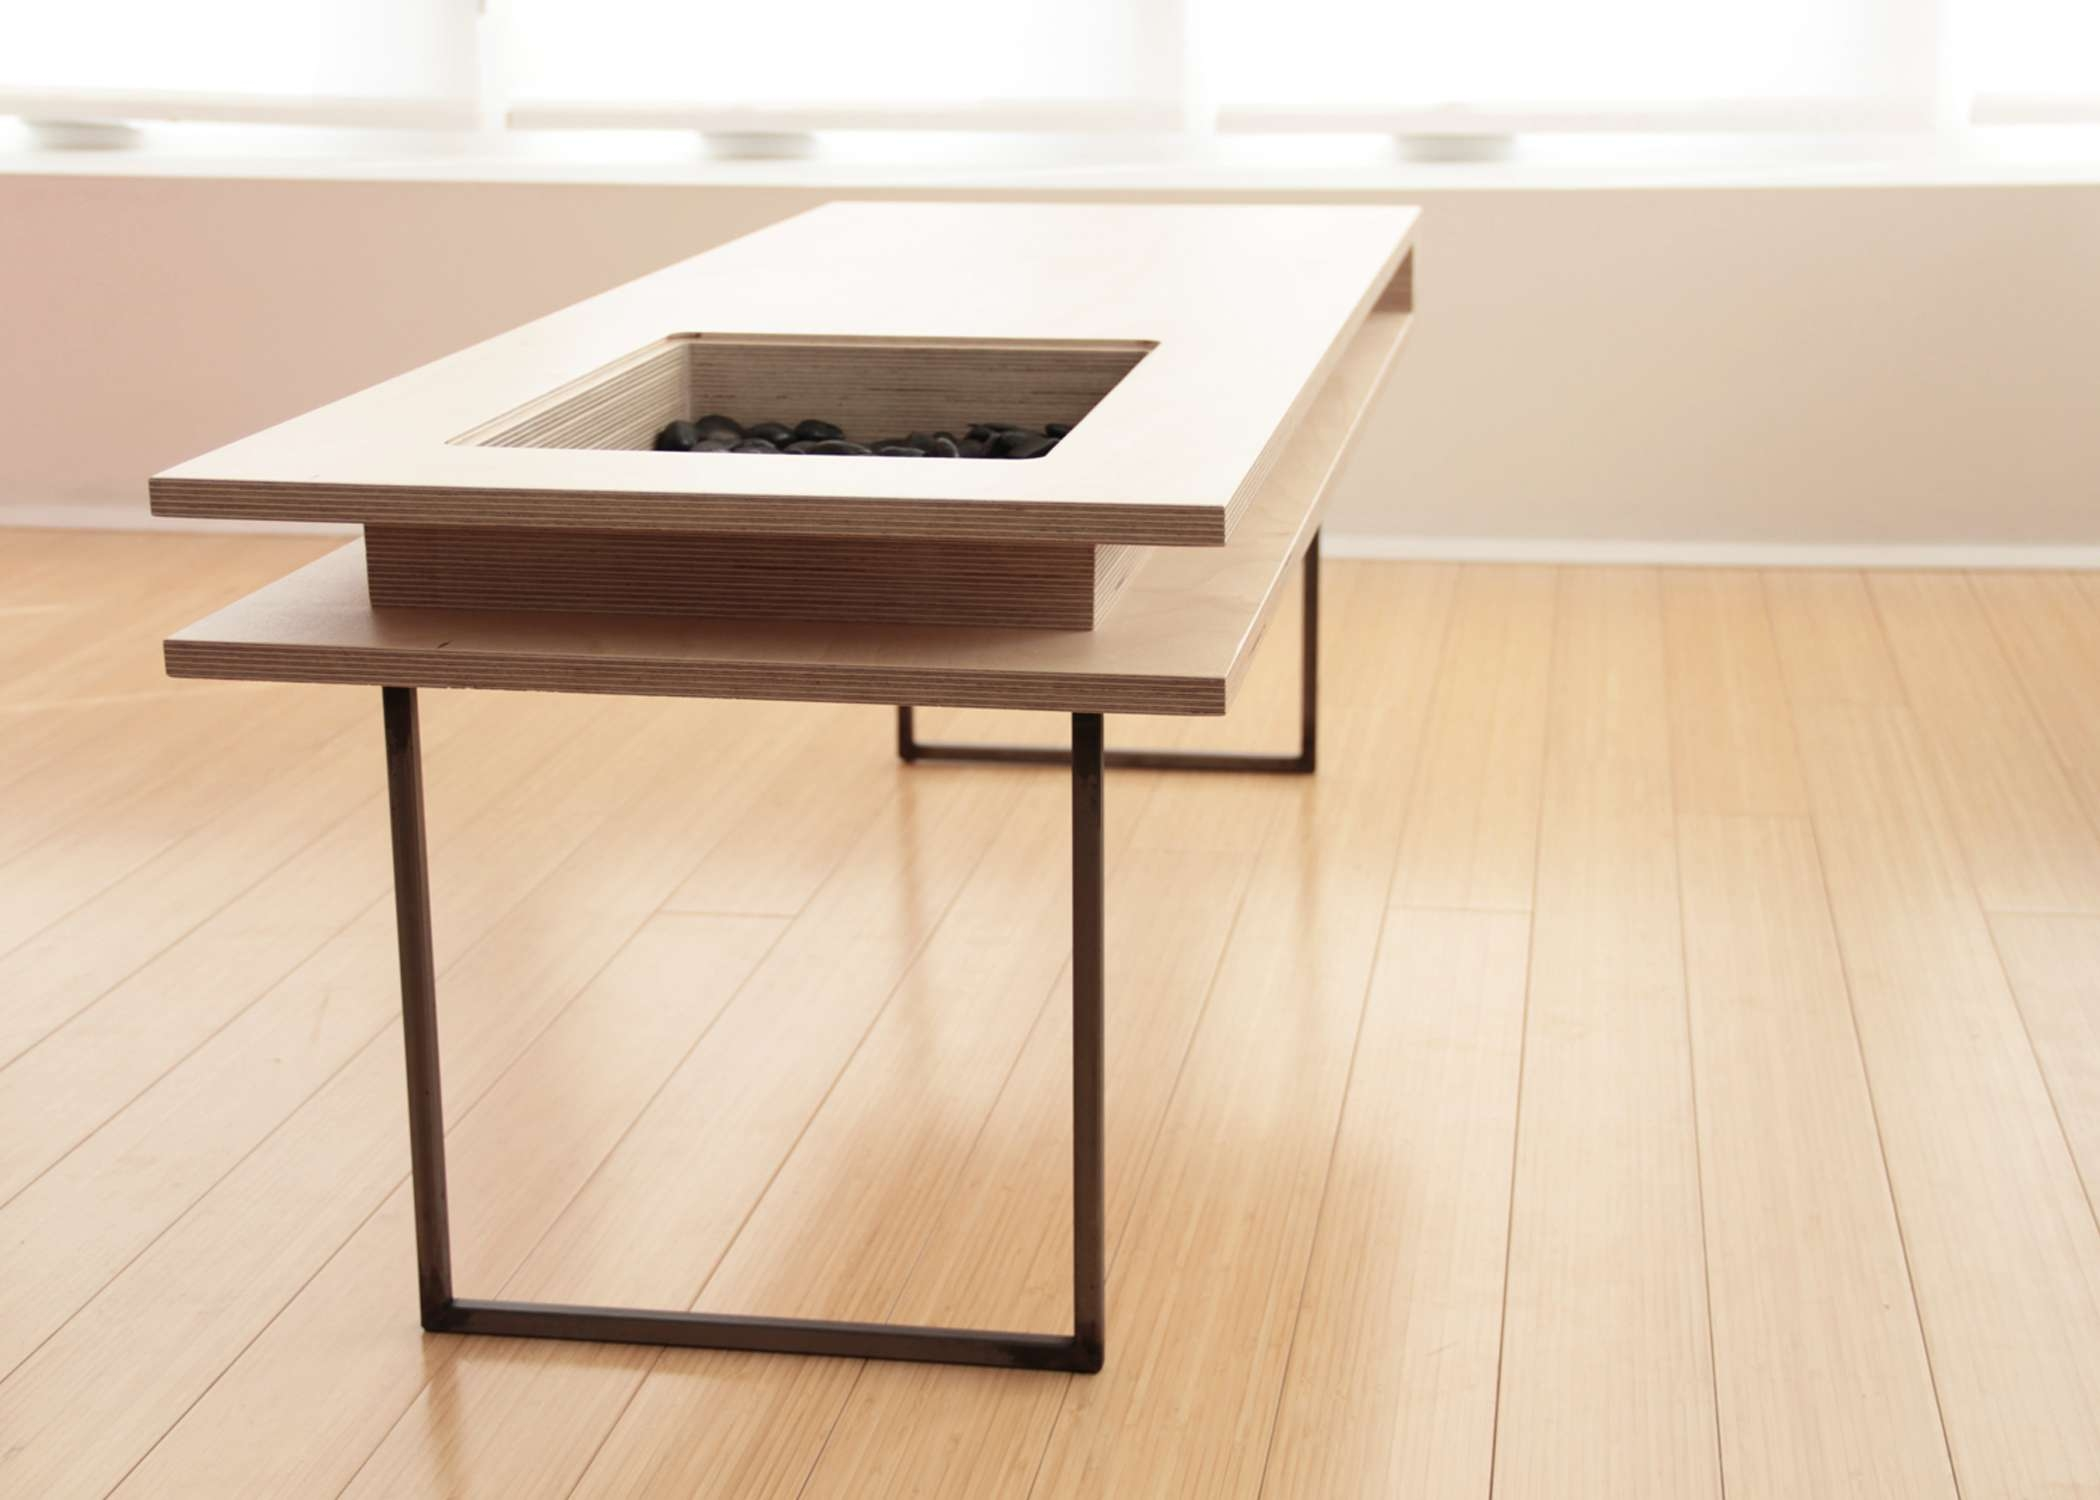 Fashionable Birch Coffee Tables Regarding Craft Design » Volume Coffee Table…. (View 17 of 20)